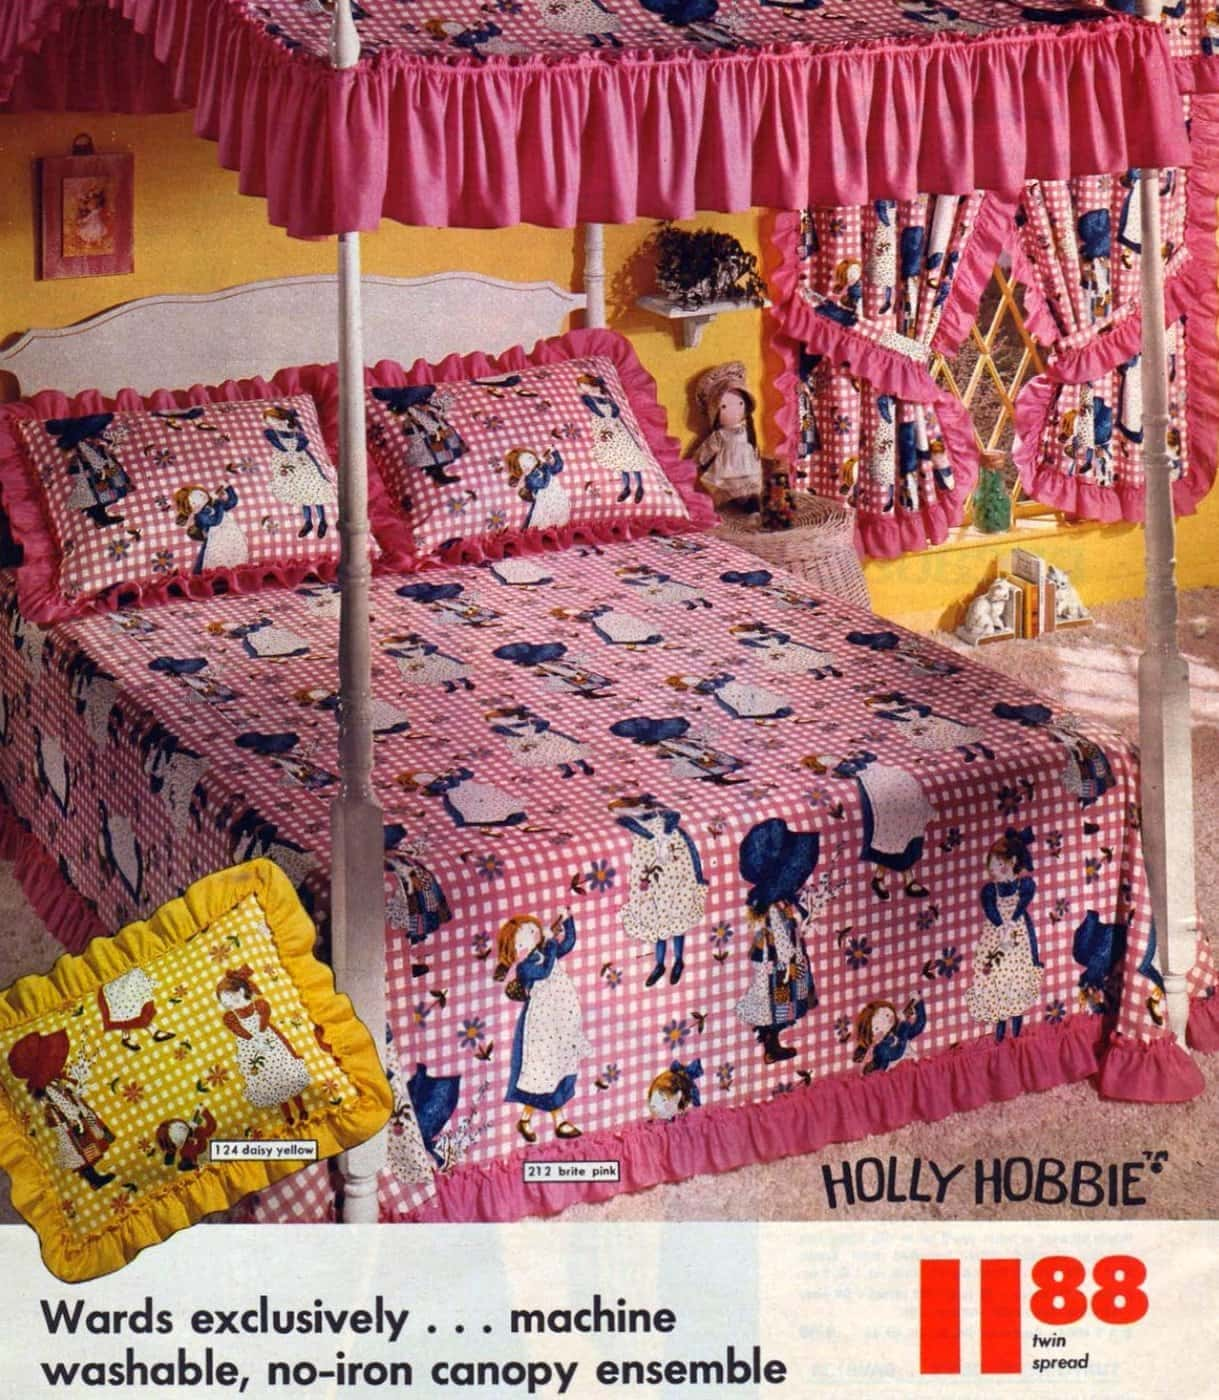 Vintage 1970s Holly Hobbie canopy bed in pink or yellow